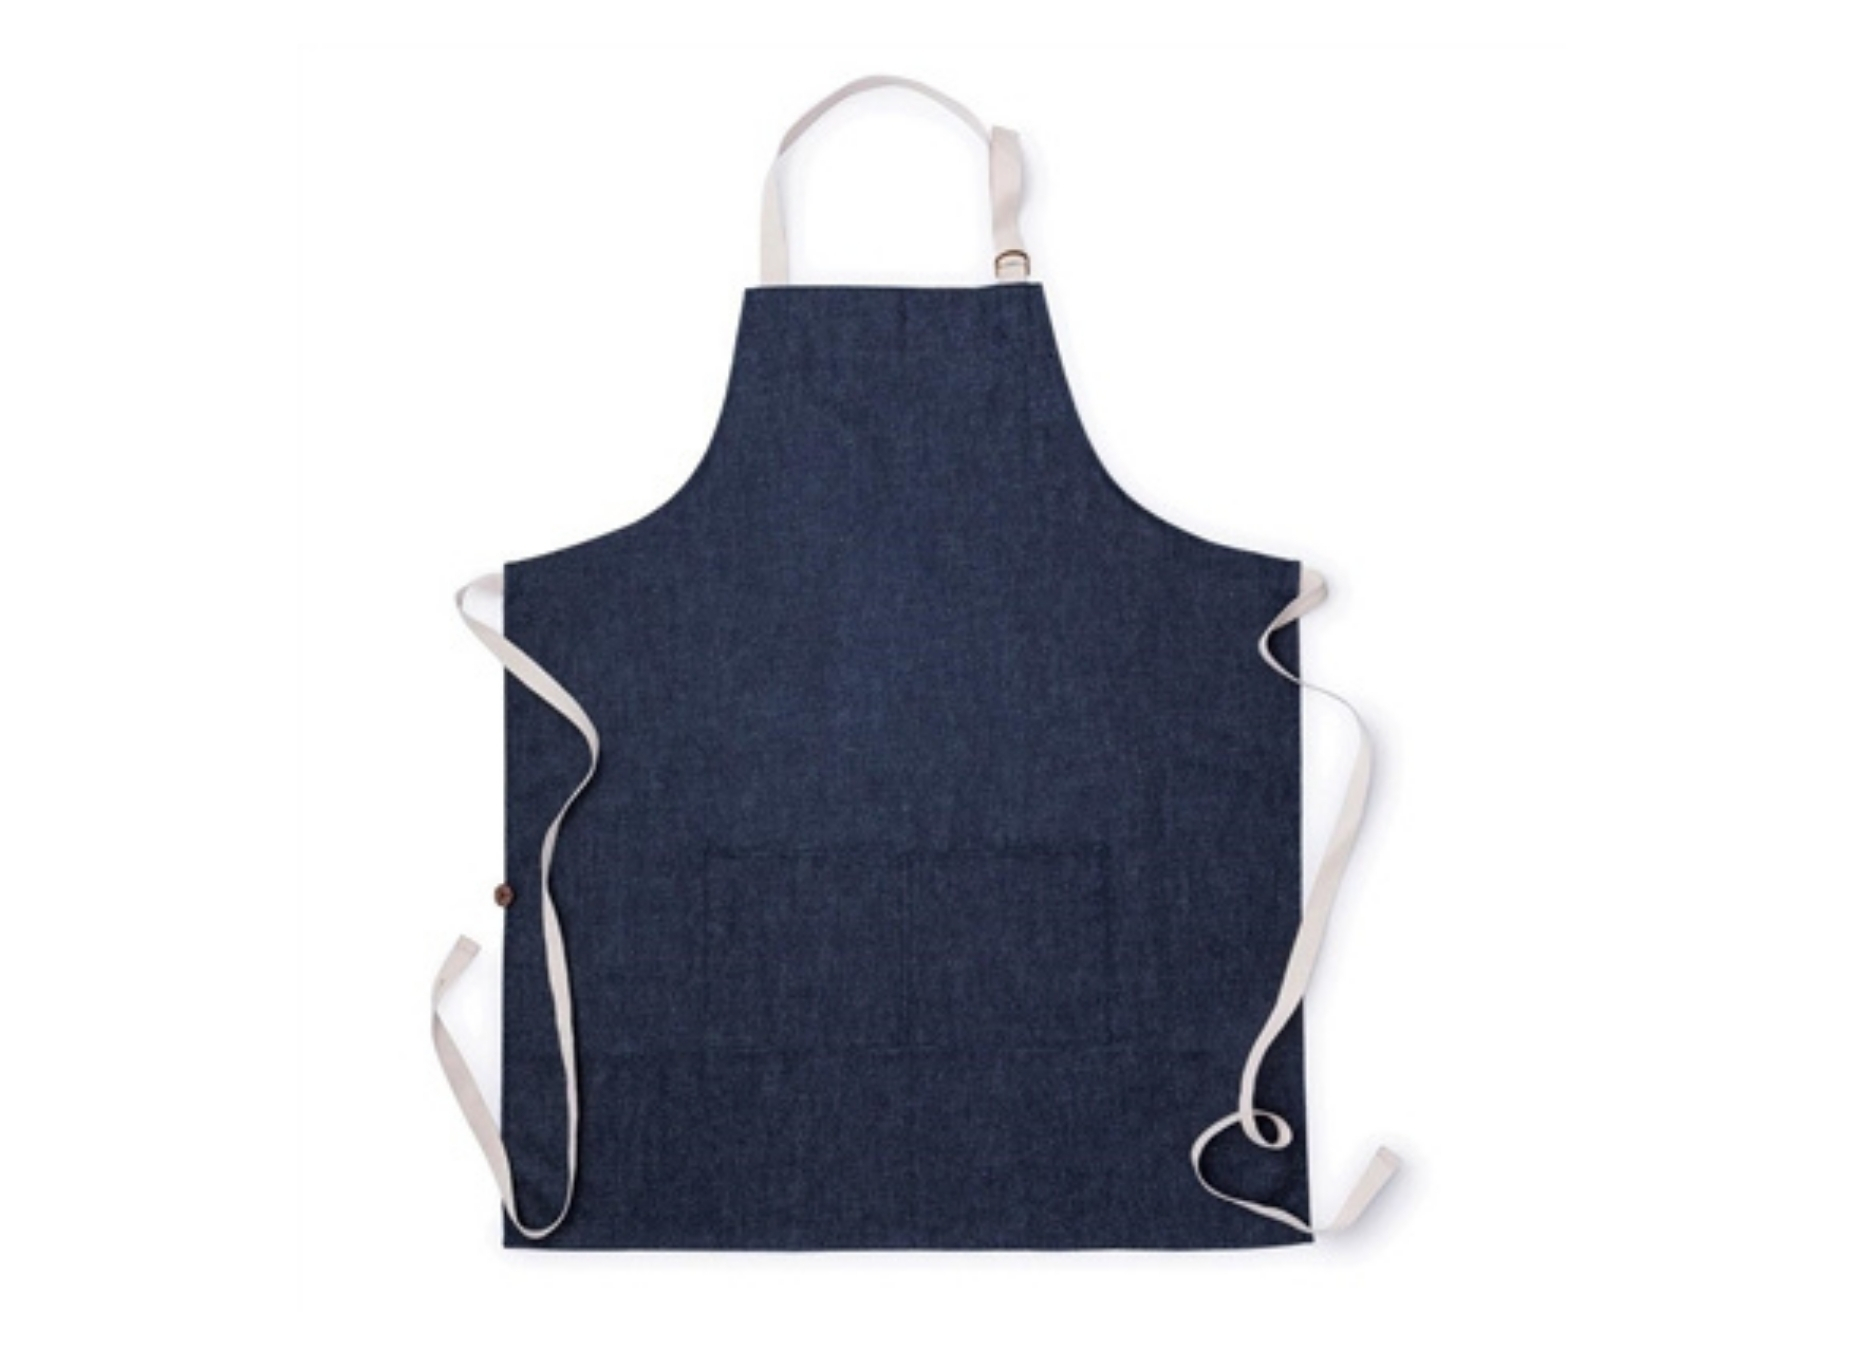 Our Green House Apron